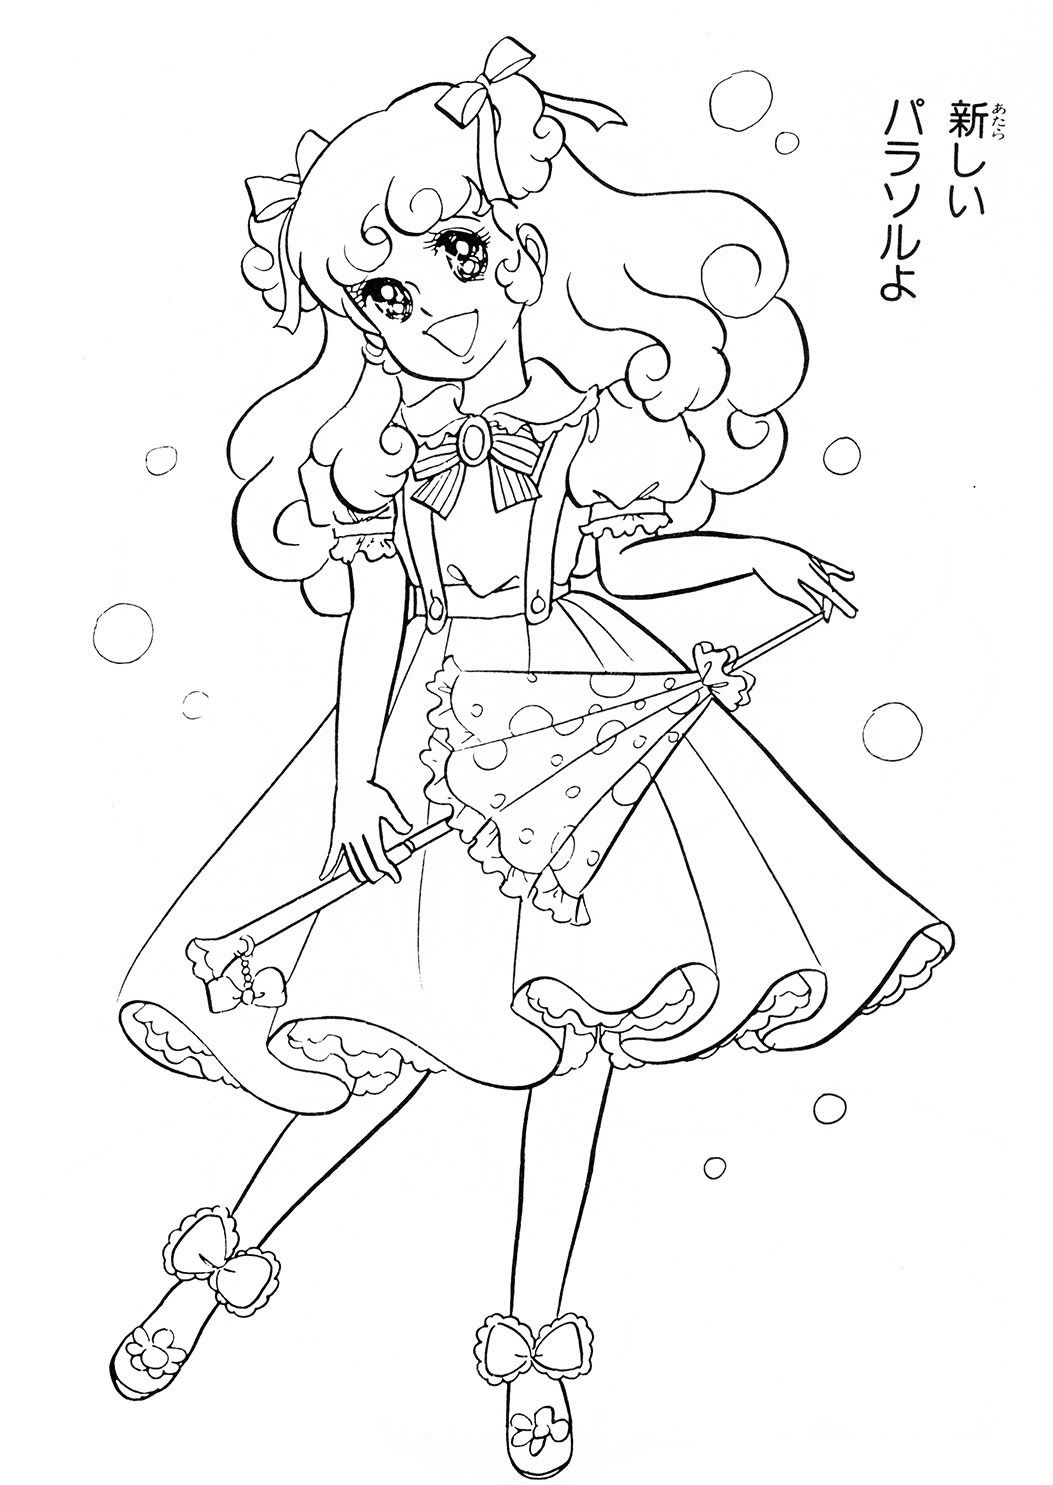 Khateerah S Image Manga Coloring Book Cute Coloring Pages Vintage Coloring Books